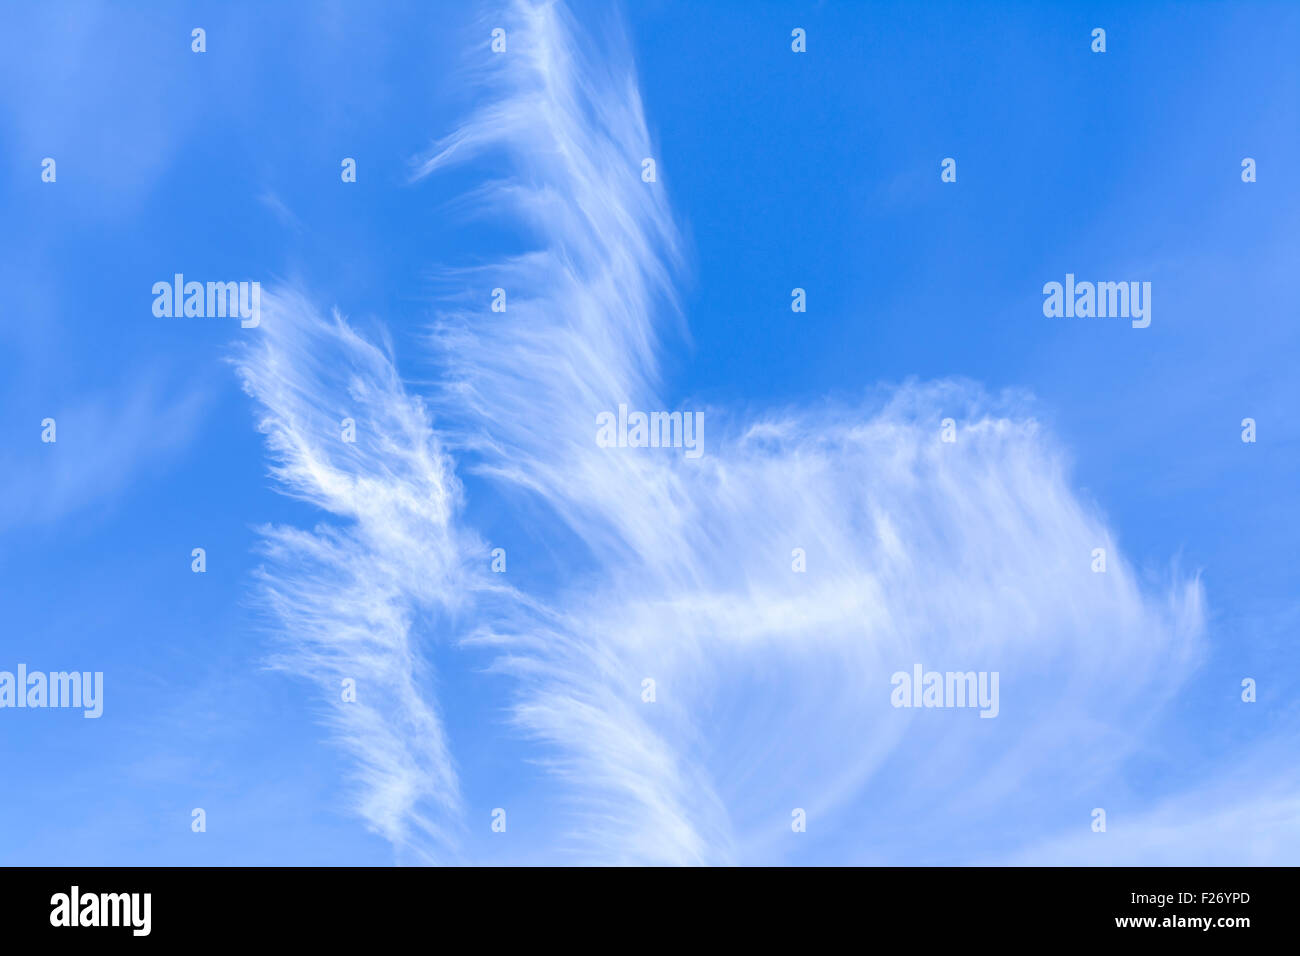 Cirrus clouds in blue sky on a bright sunny day. - Stock Image